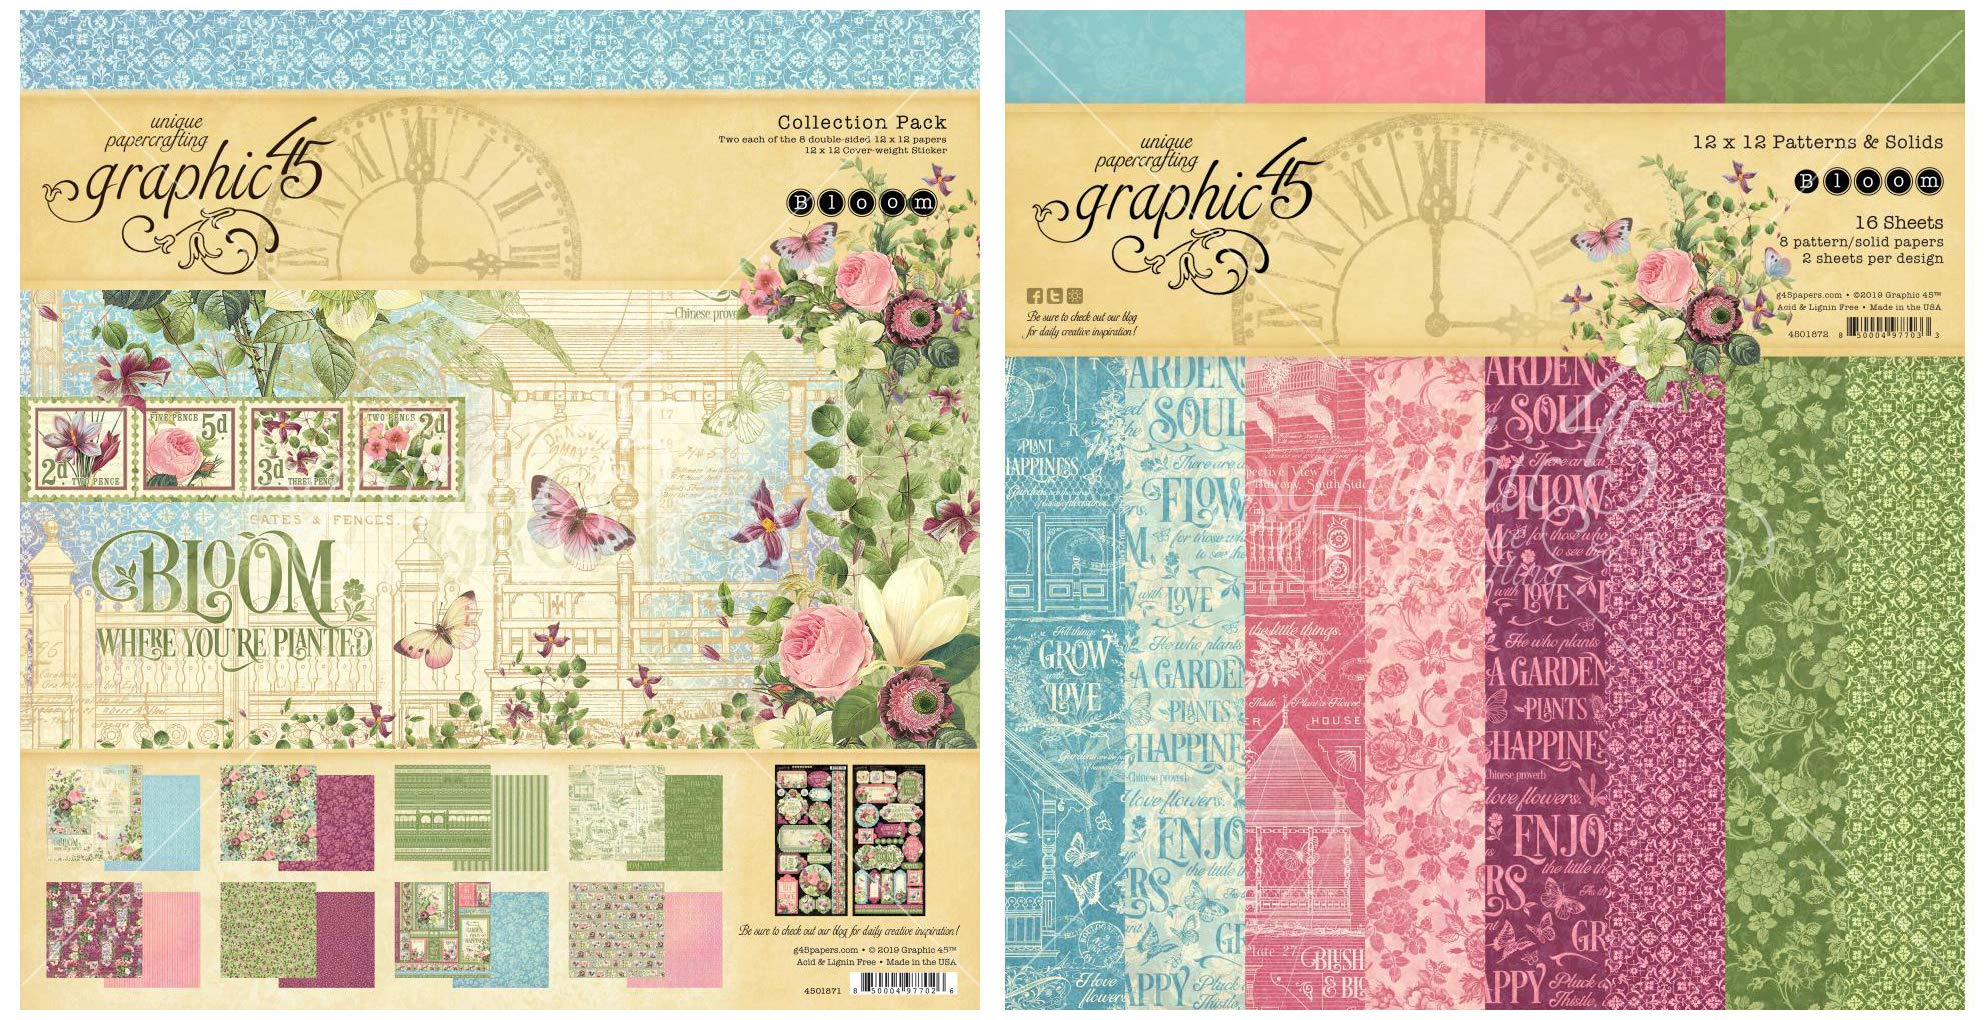 Graphic 45 - Bloom Collection Pack and Bloom Patterns & Solids Paper Pad - 12 x 12 Inch Decorative Papers - 2 Items by Graphic 45